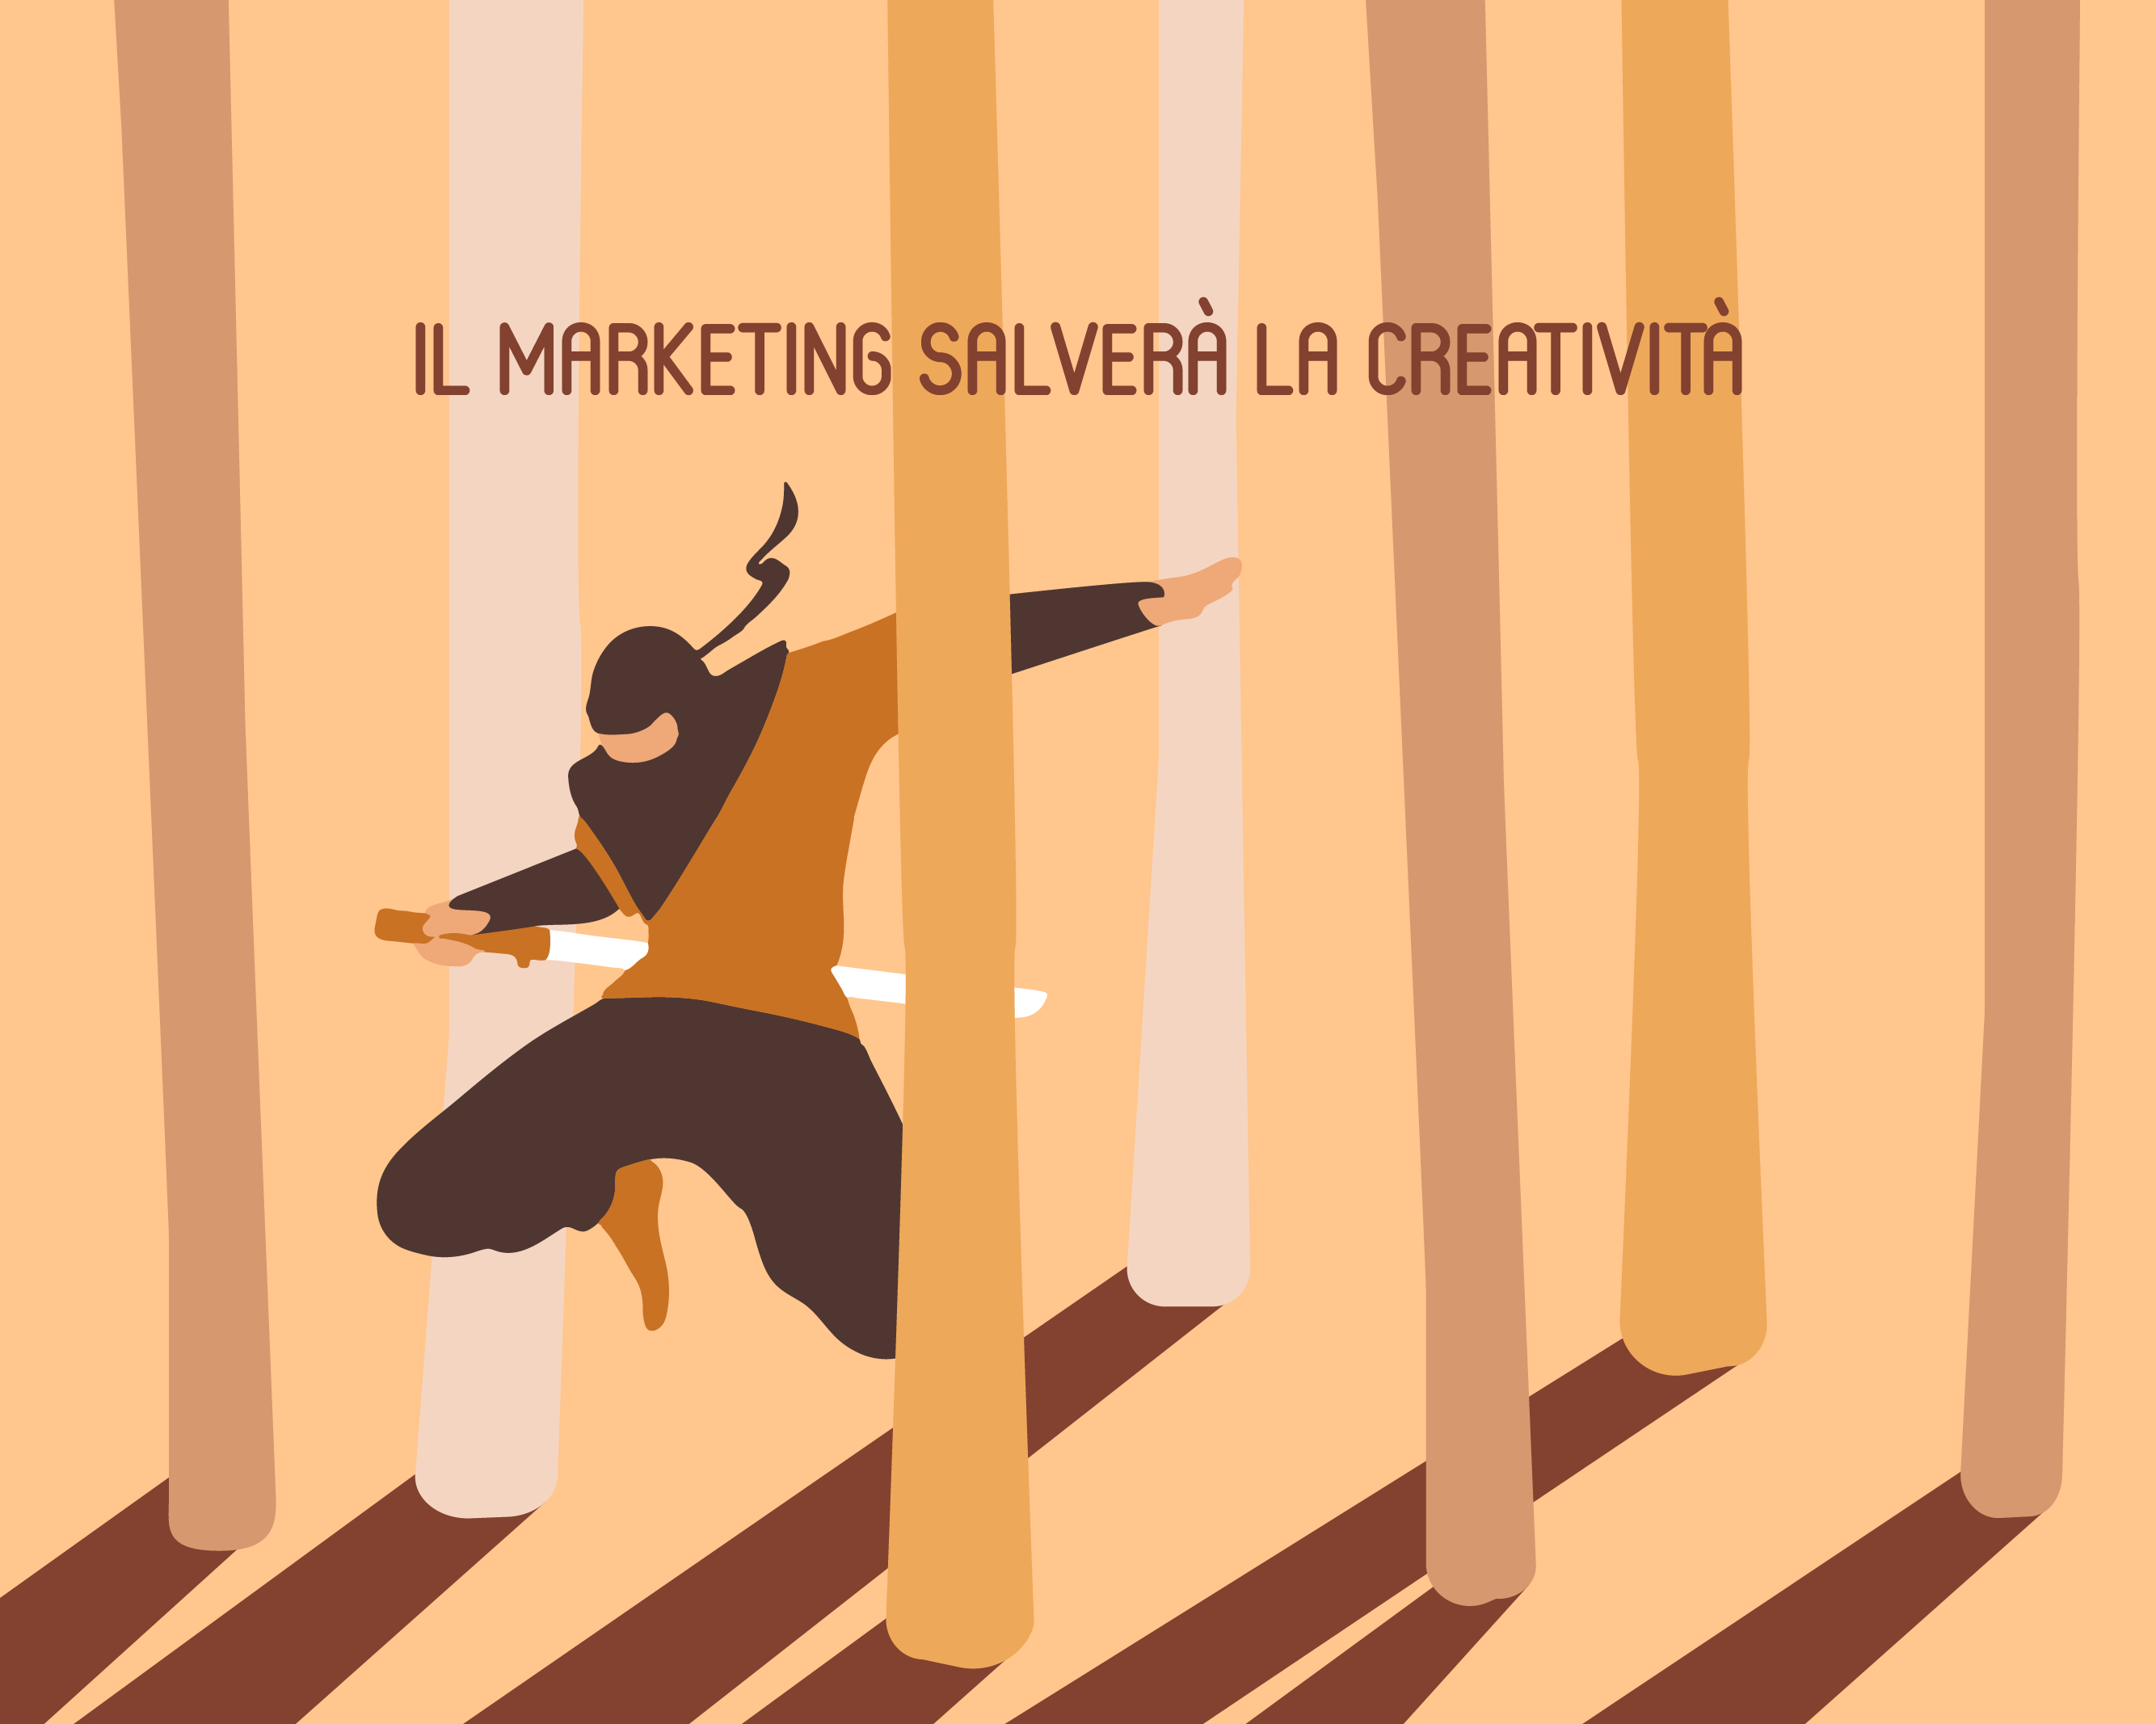 Il marketing salverà la creatività